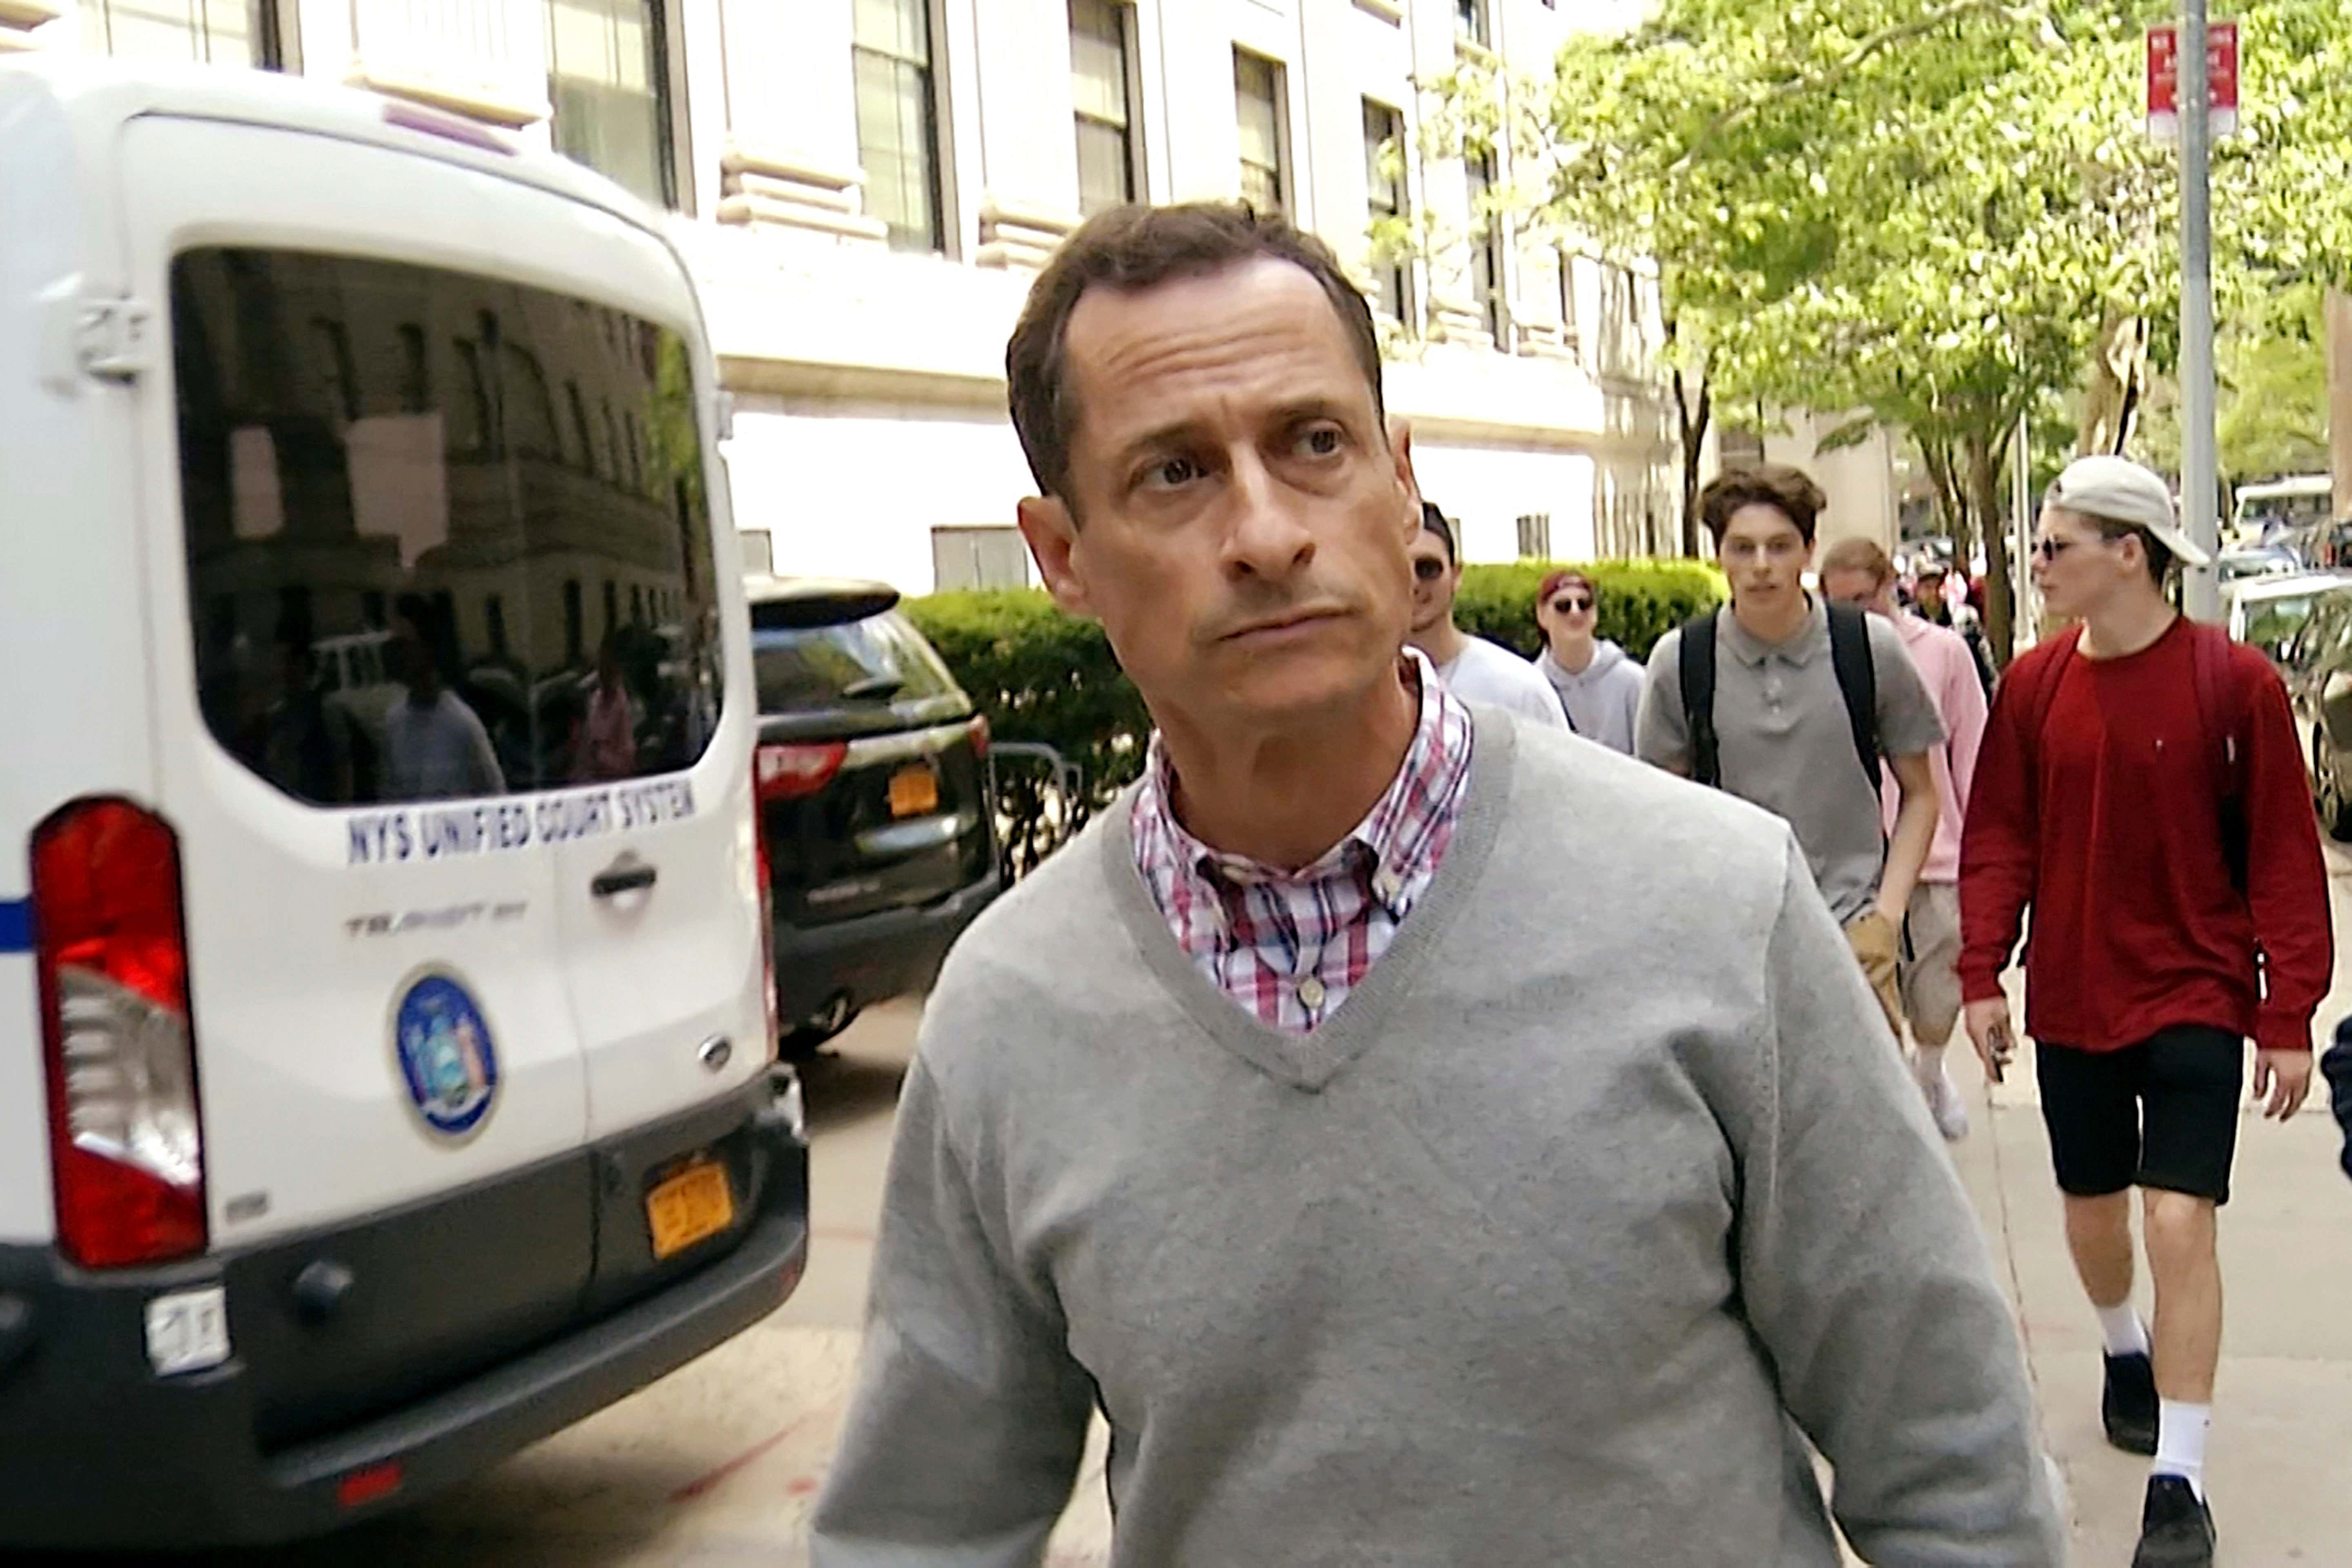 In this image made from video, disgraced ex-Congressman Anthony Weiner leaves a federal courthouse where the Probation Department is located, in New York, . Weiner visited his probation officer a day after leaving a halfway house at the conclusion of a 21-month prison sentence for his illegal internet contact with a 15-year-old girl